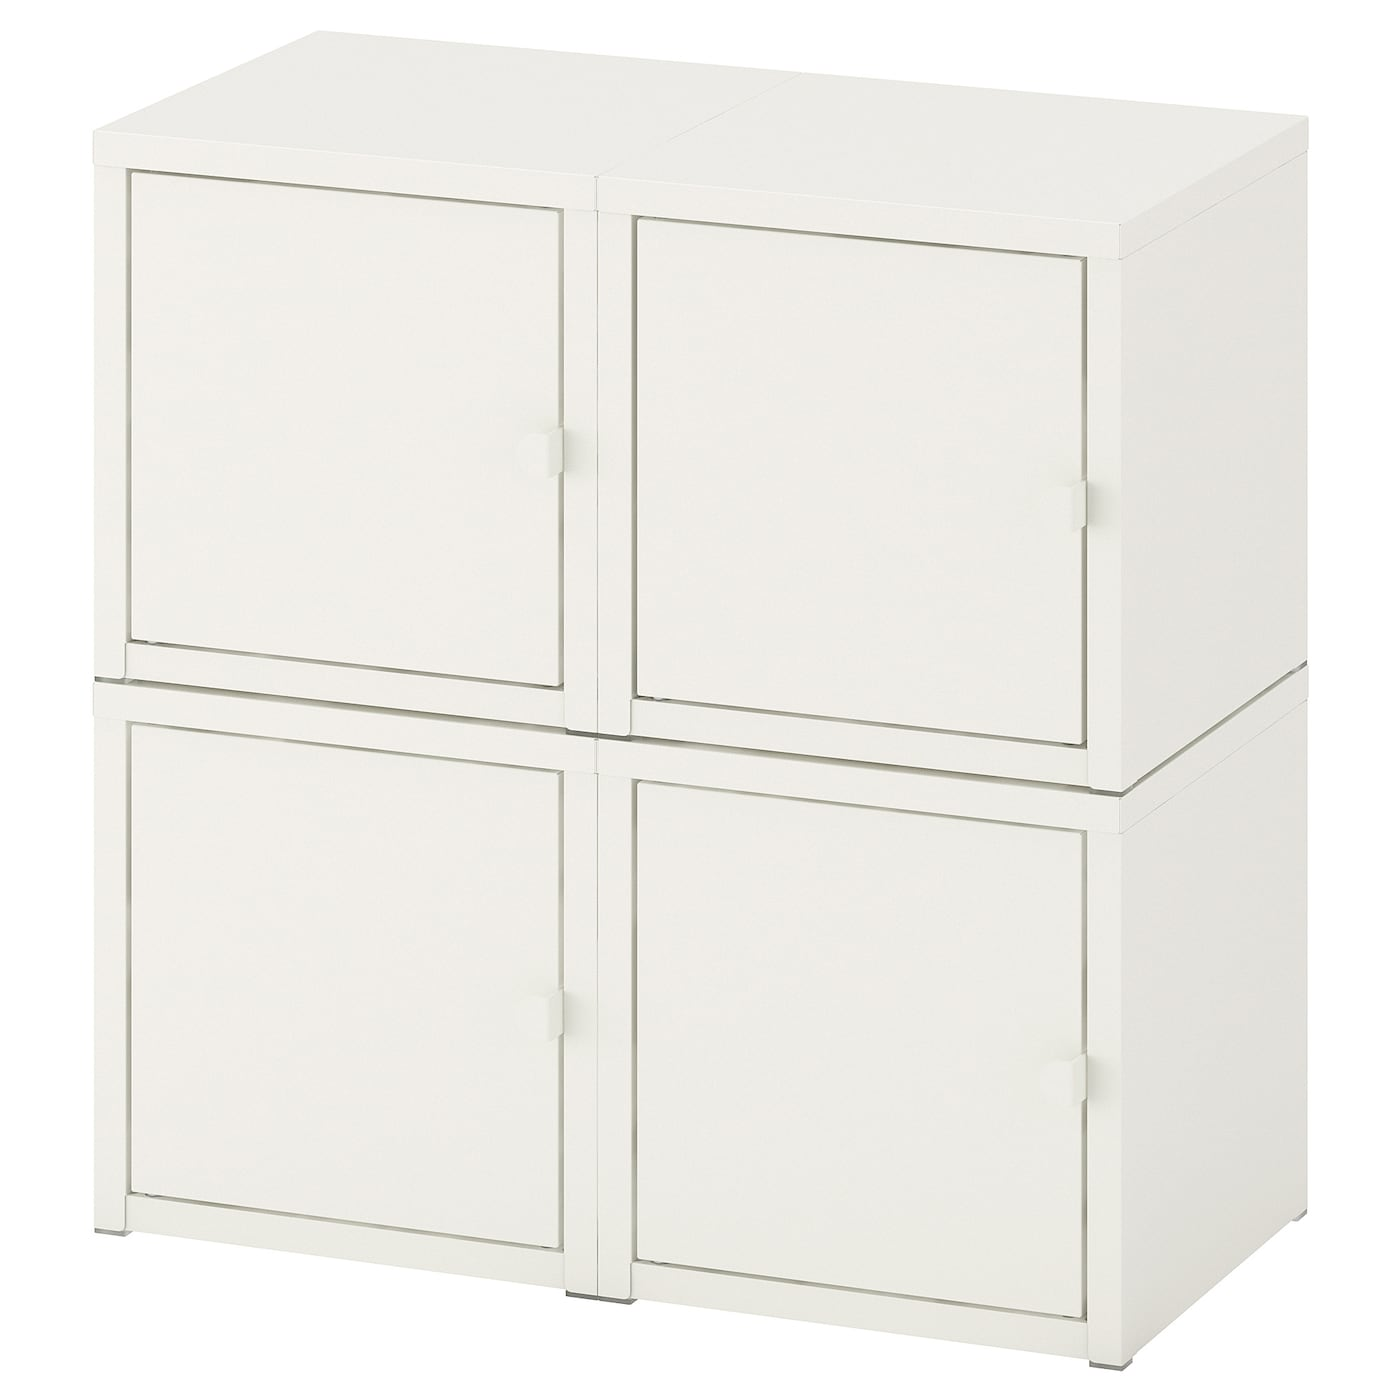 ikea wall cabinets lixhult wall mounted cabinet combination white 50 x 25 x 17757